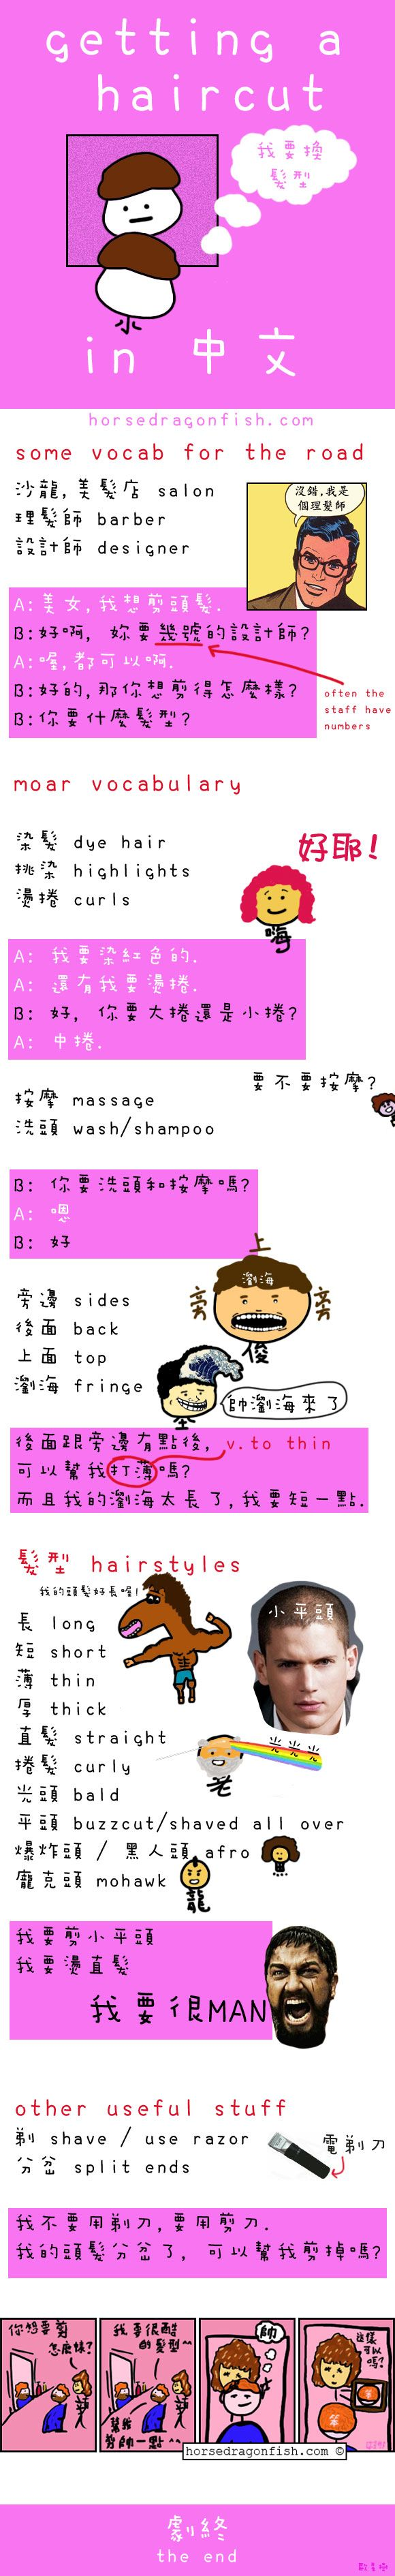 HorseDragonFish comic teaching how to get a haircut in Chinese plus how to say different hairstyles